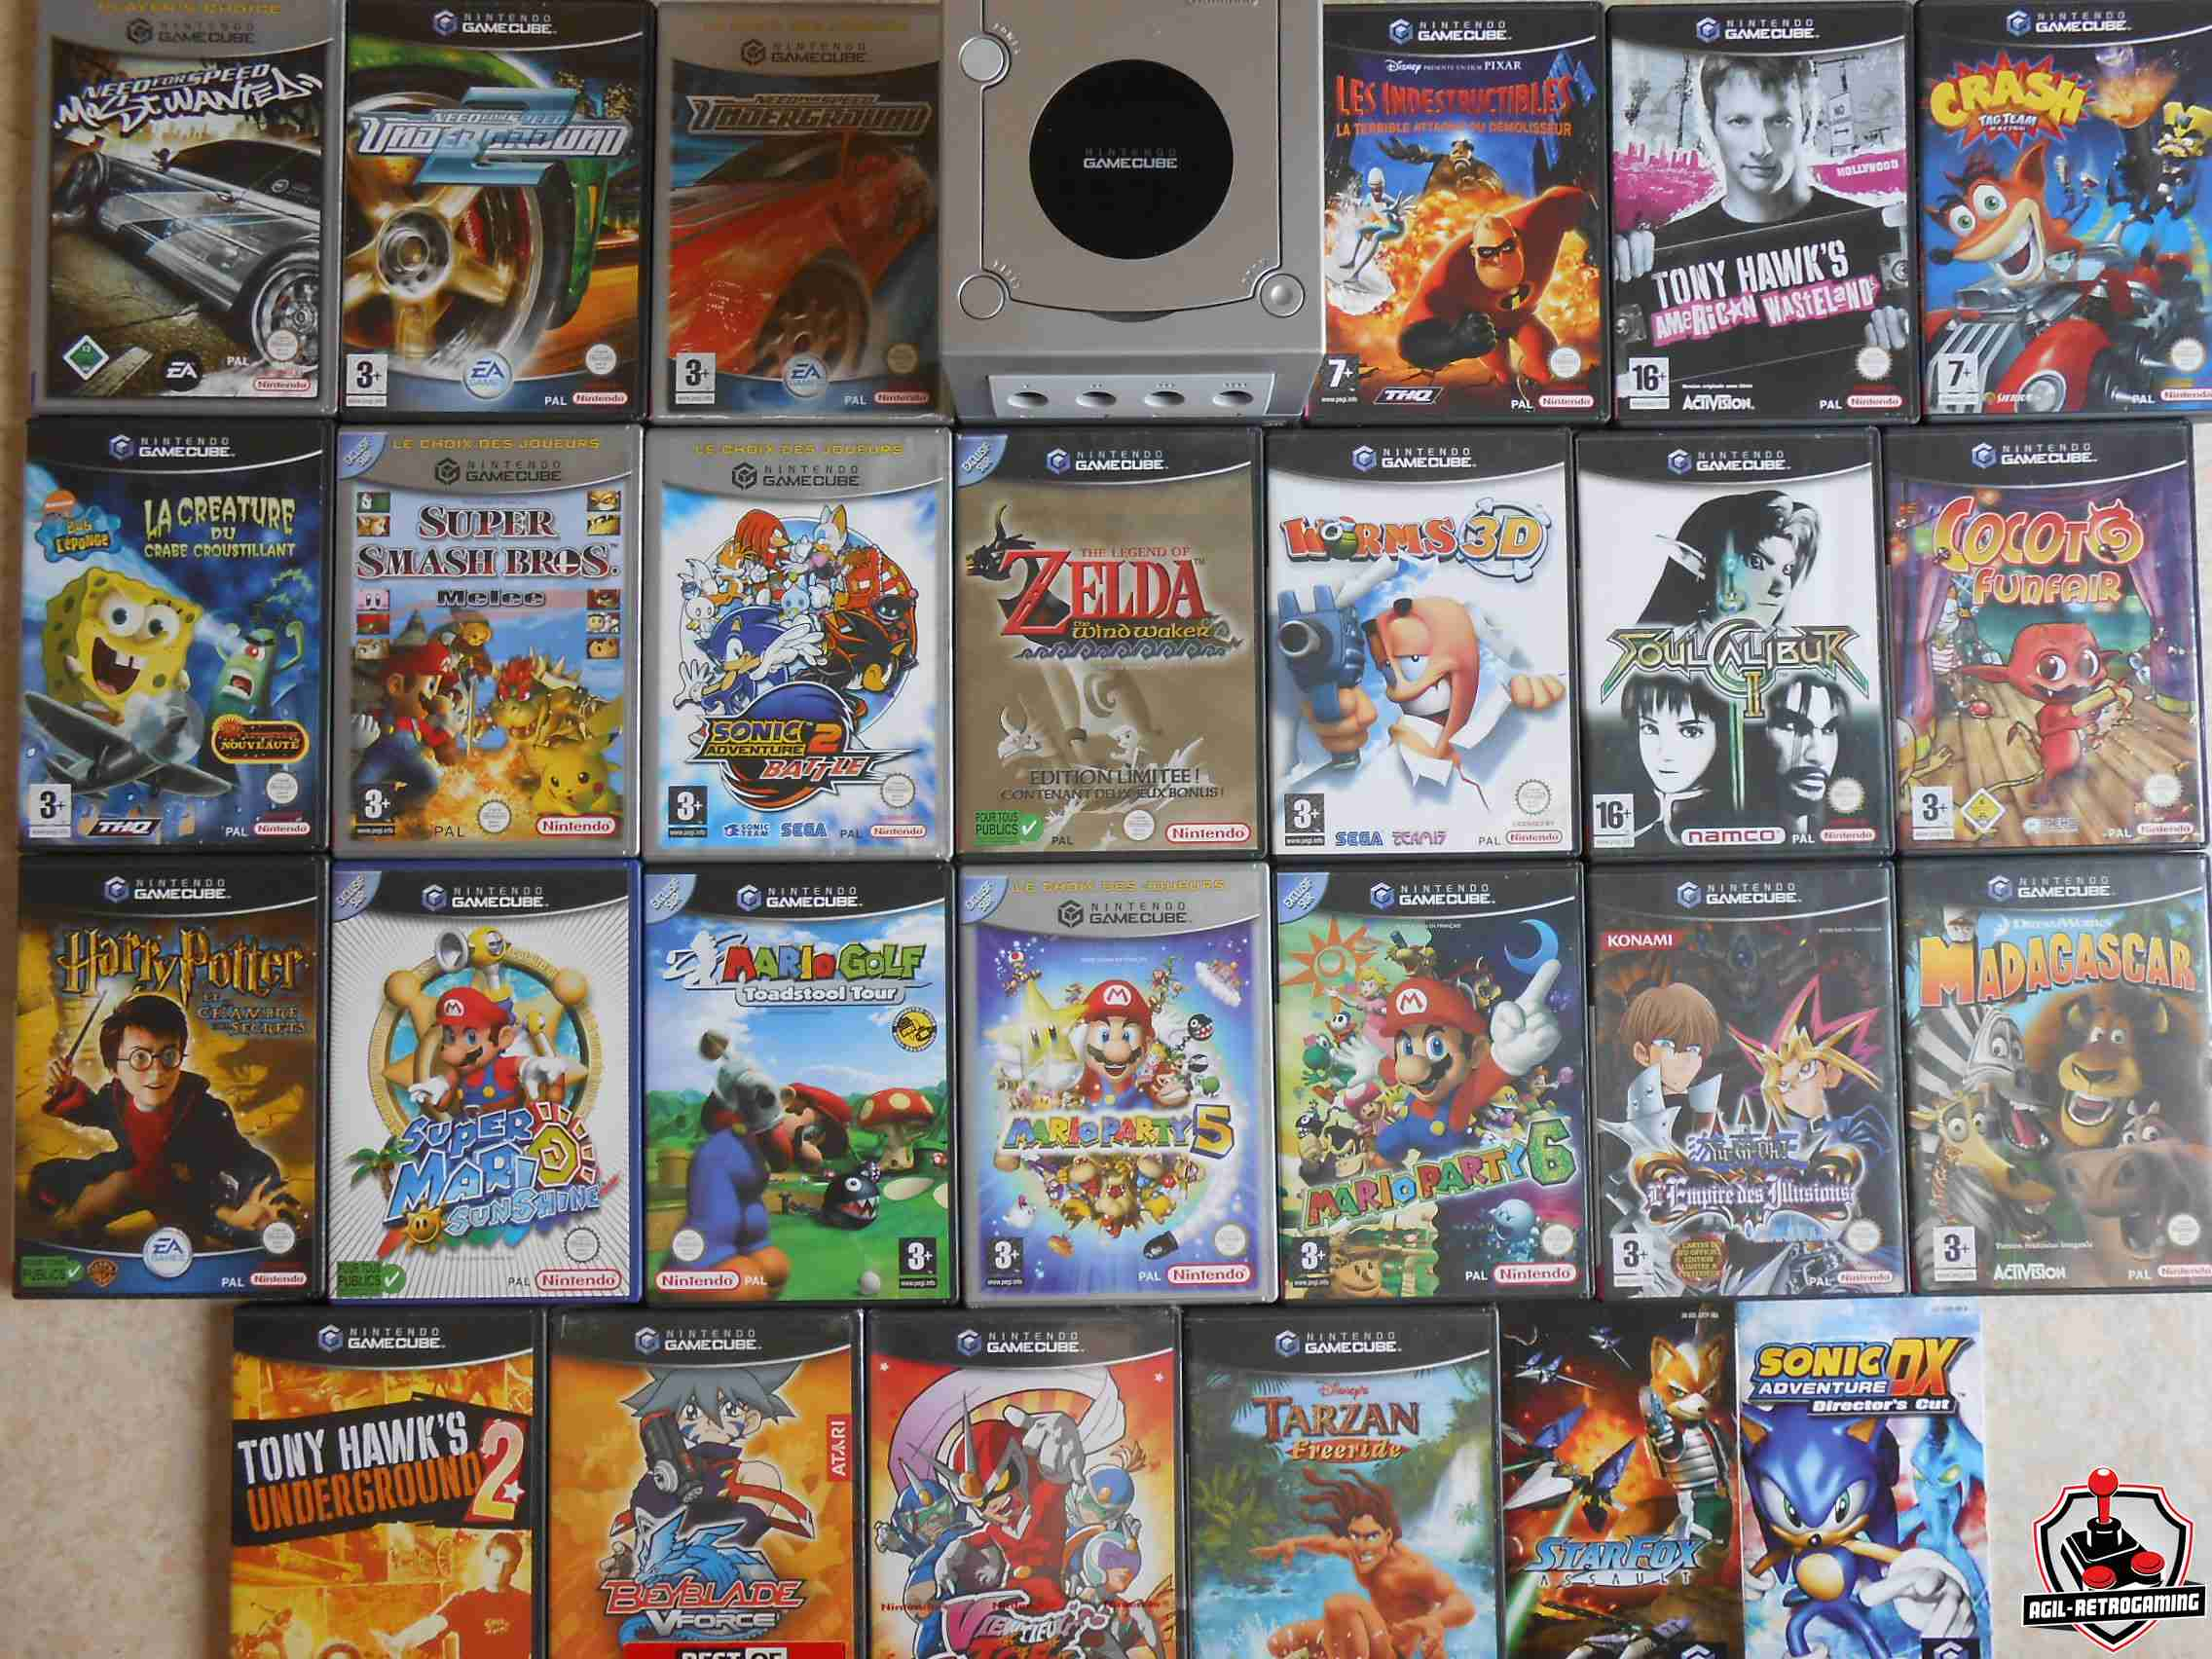 Best Gamecube Games Pictures to Pin on Pinterest - PinsDaddy